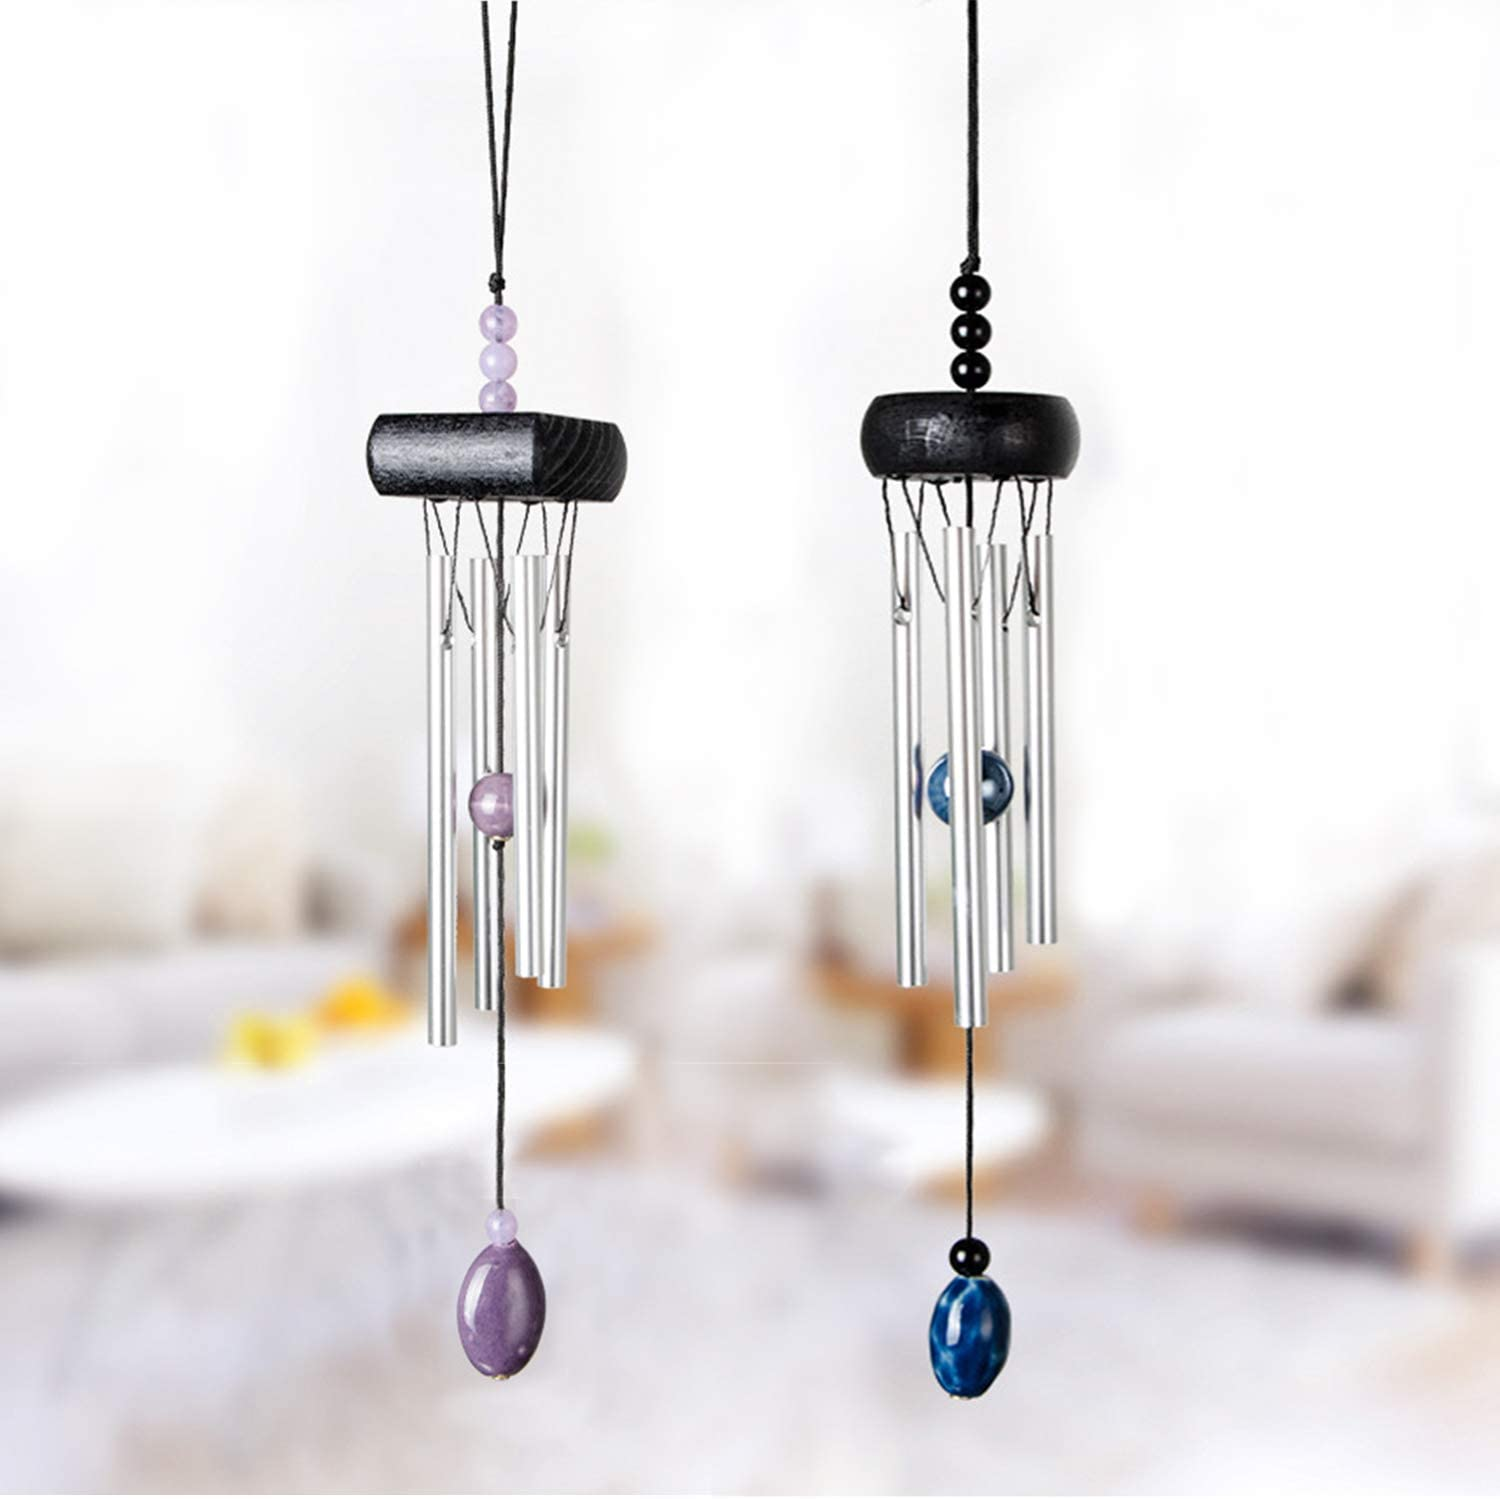 UNIME Wind Chimes, Creative Design 2 Pack Beautiful Garden Chimes, Portable Metal Wind Chimes for Home Garden Decoration, Small Size